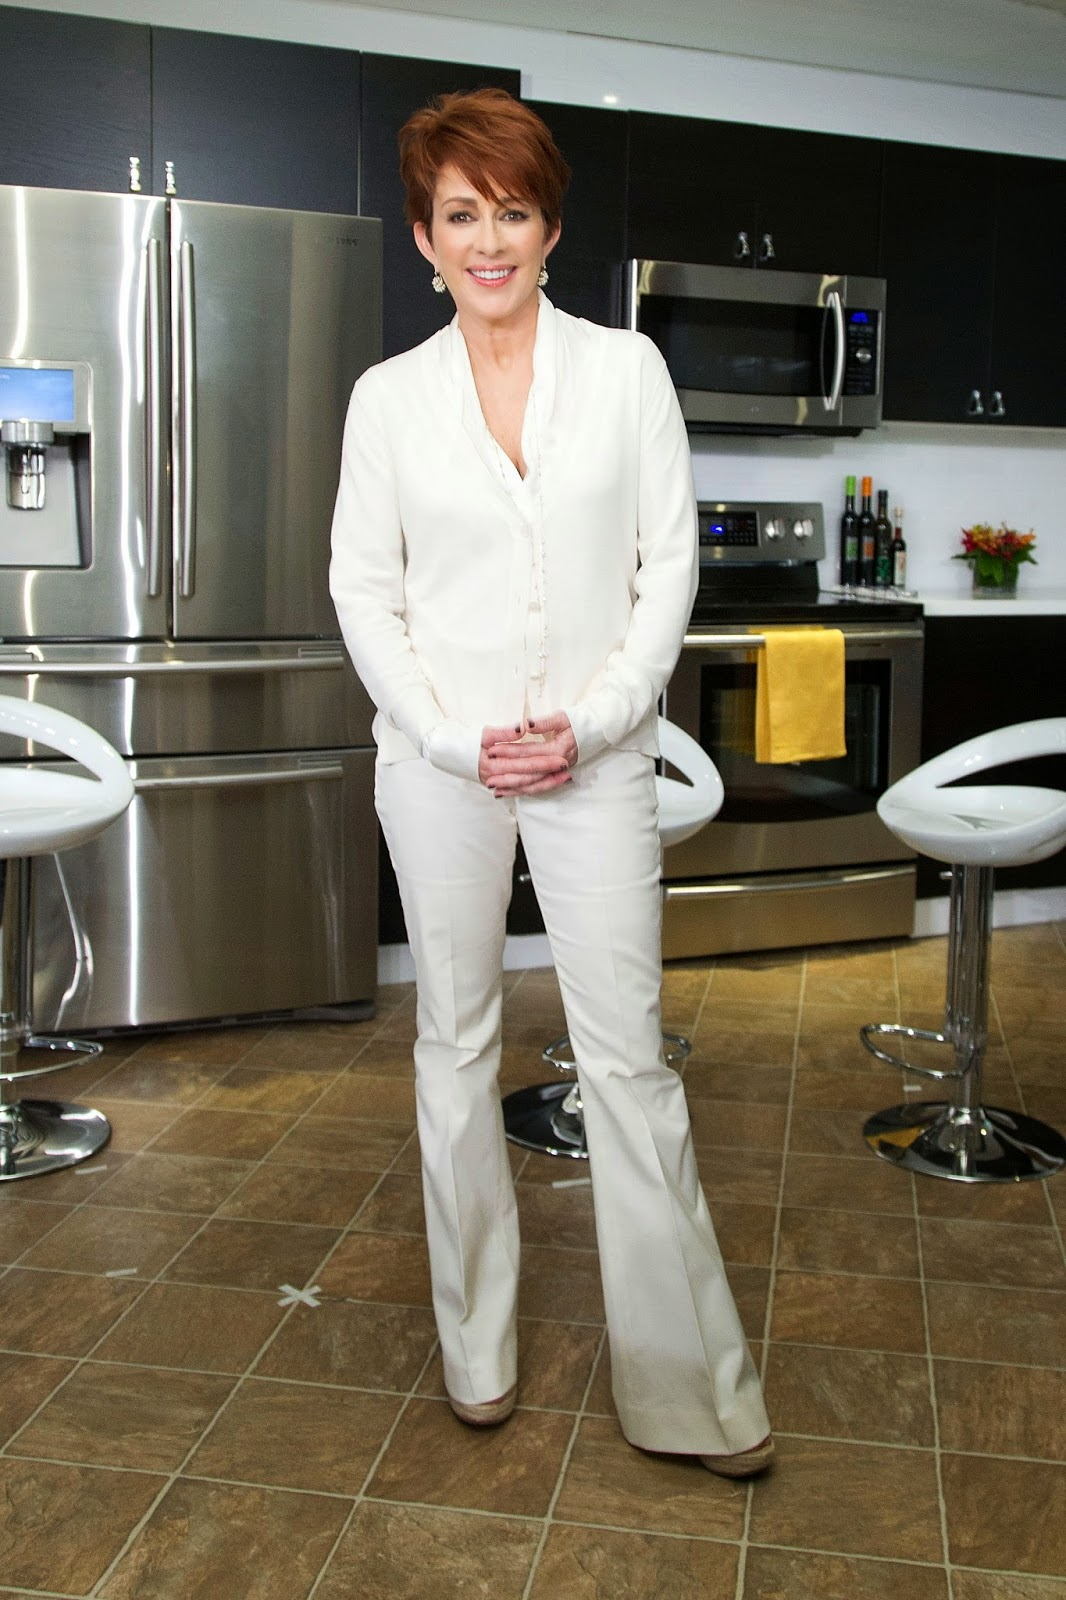 Patricia Heaton White Silk Blouse Under Cardigan Satin